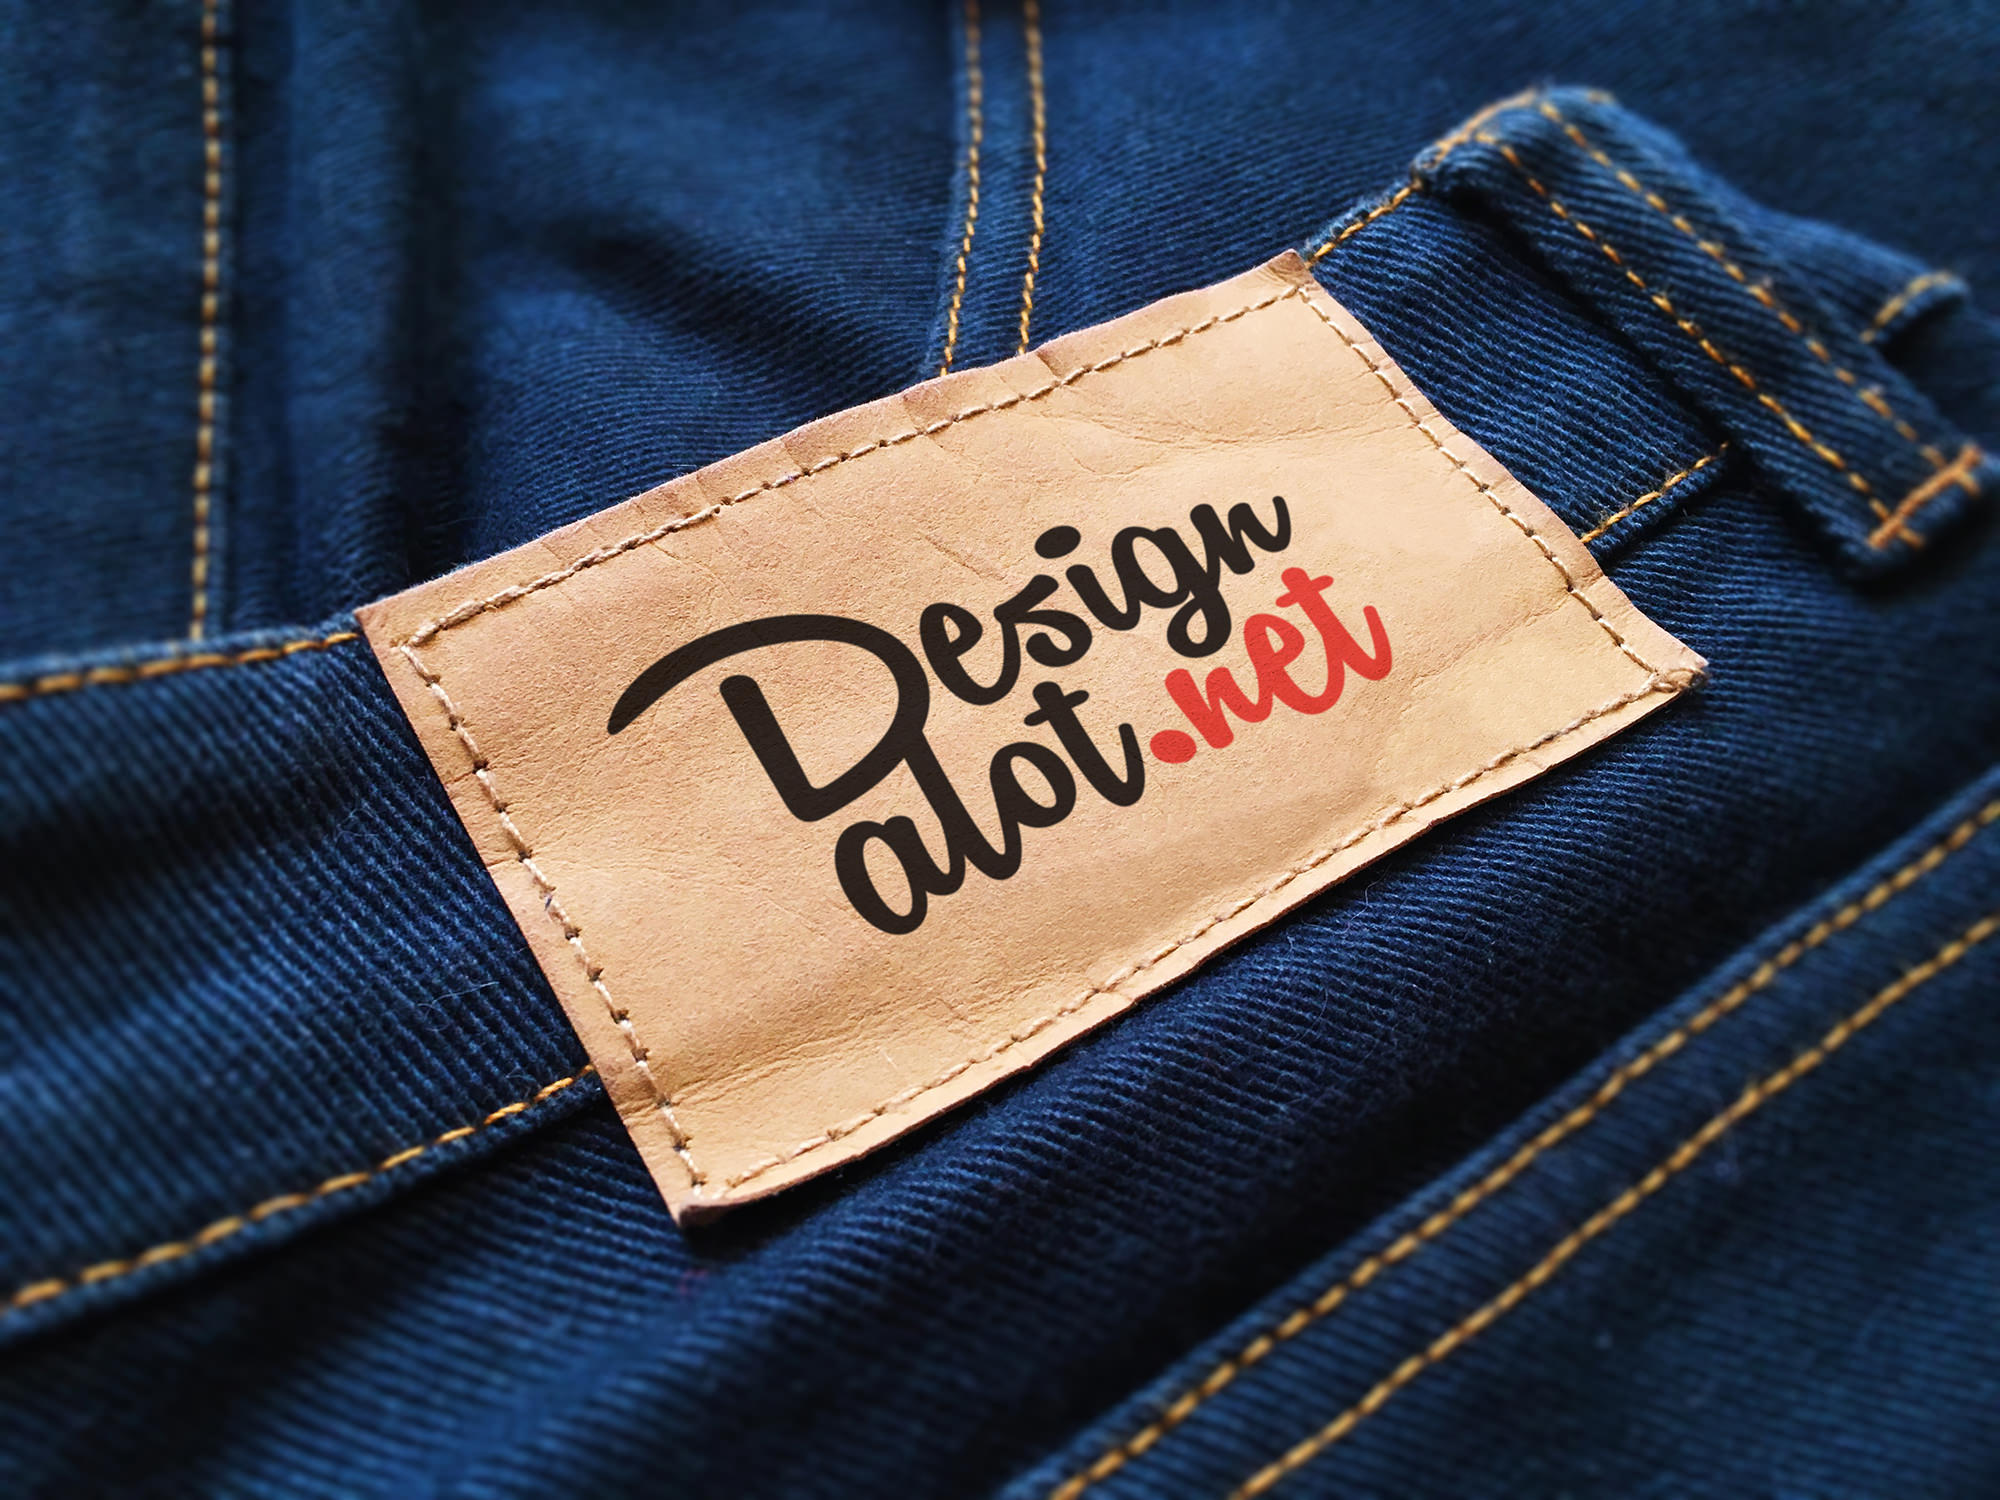 7 jeans and pants label mockups design a lot